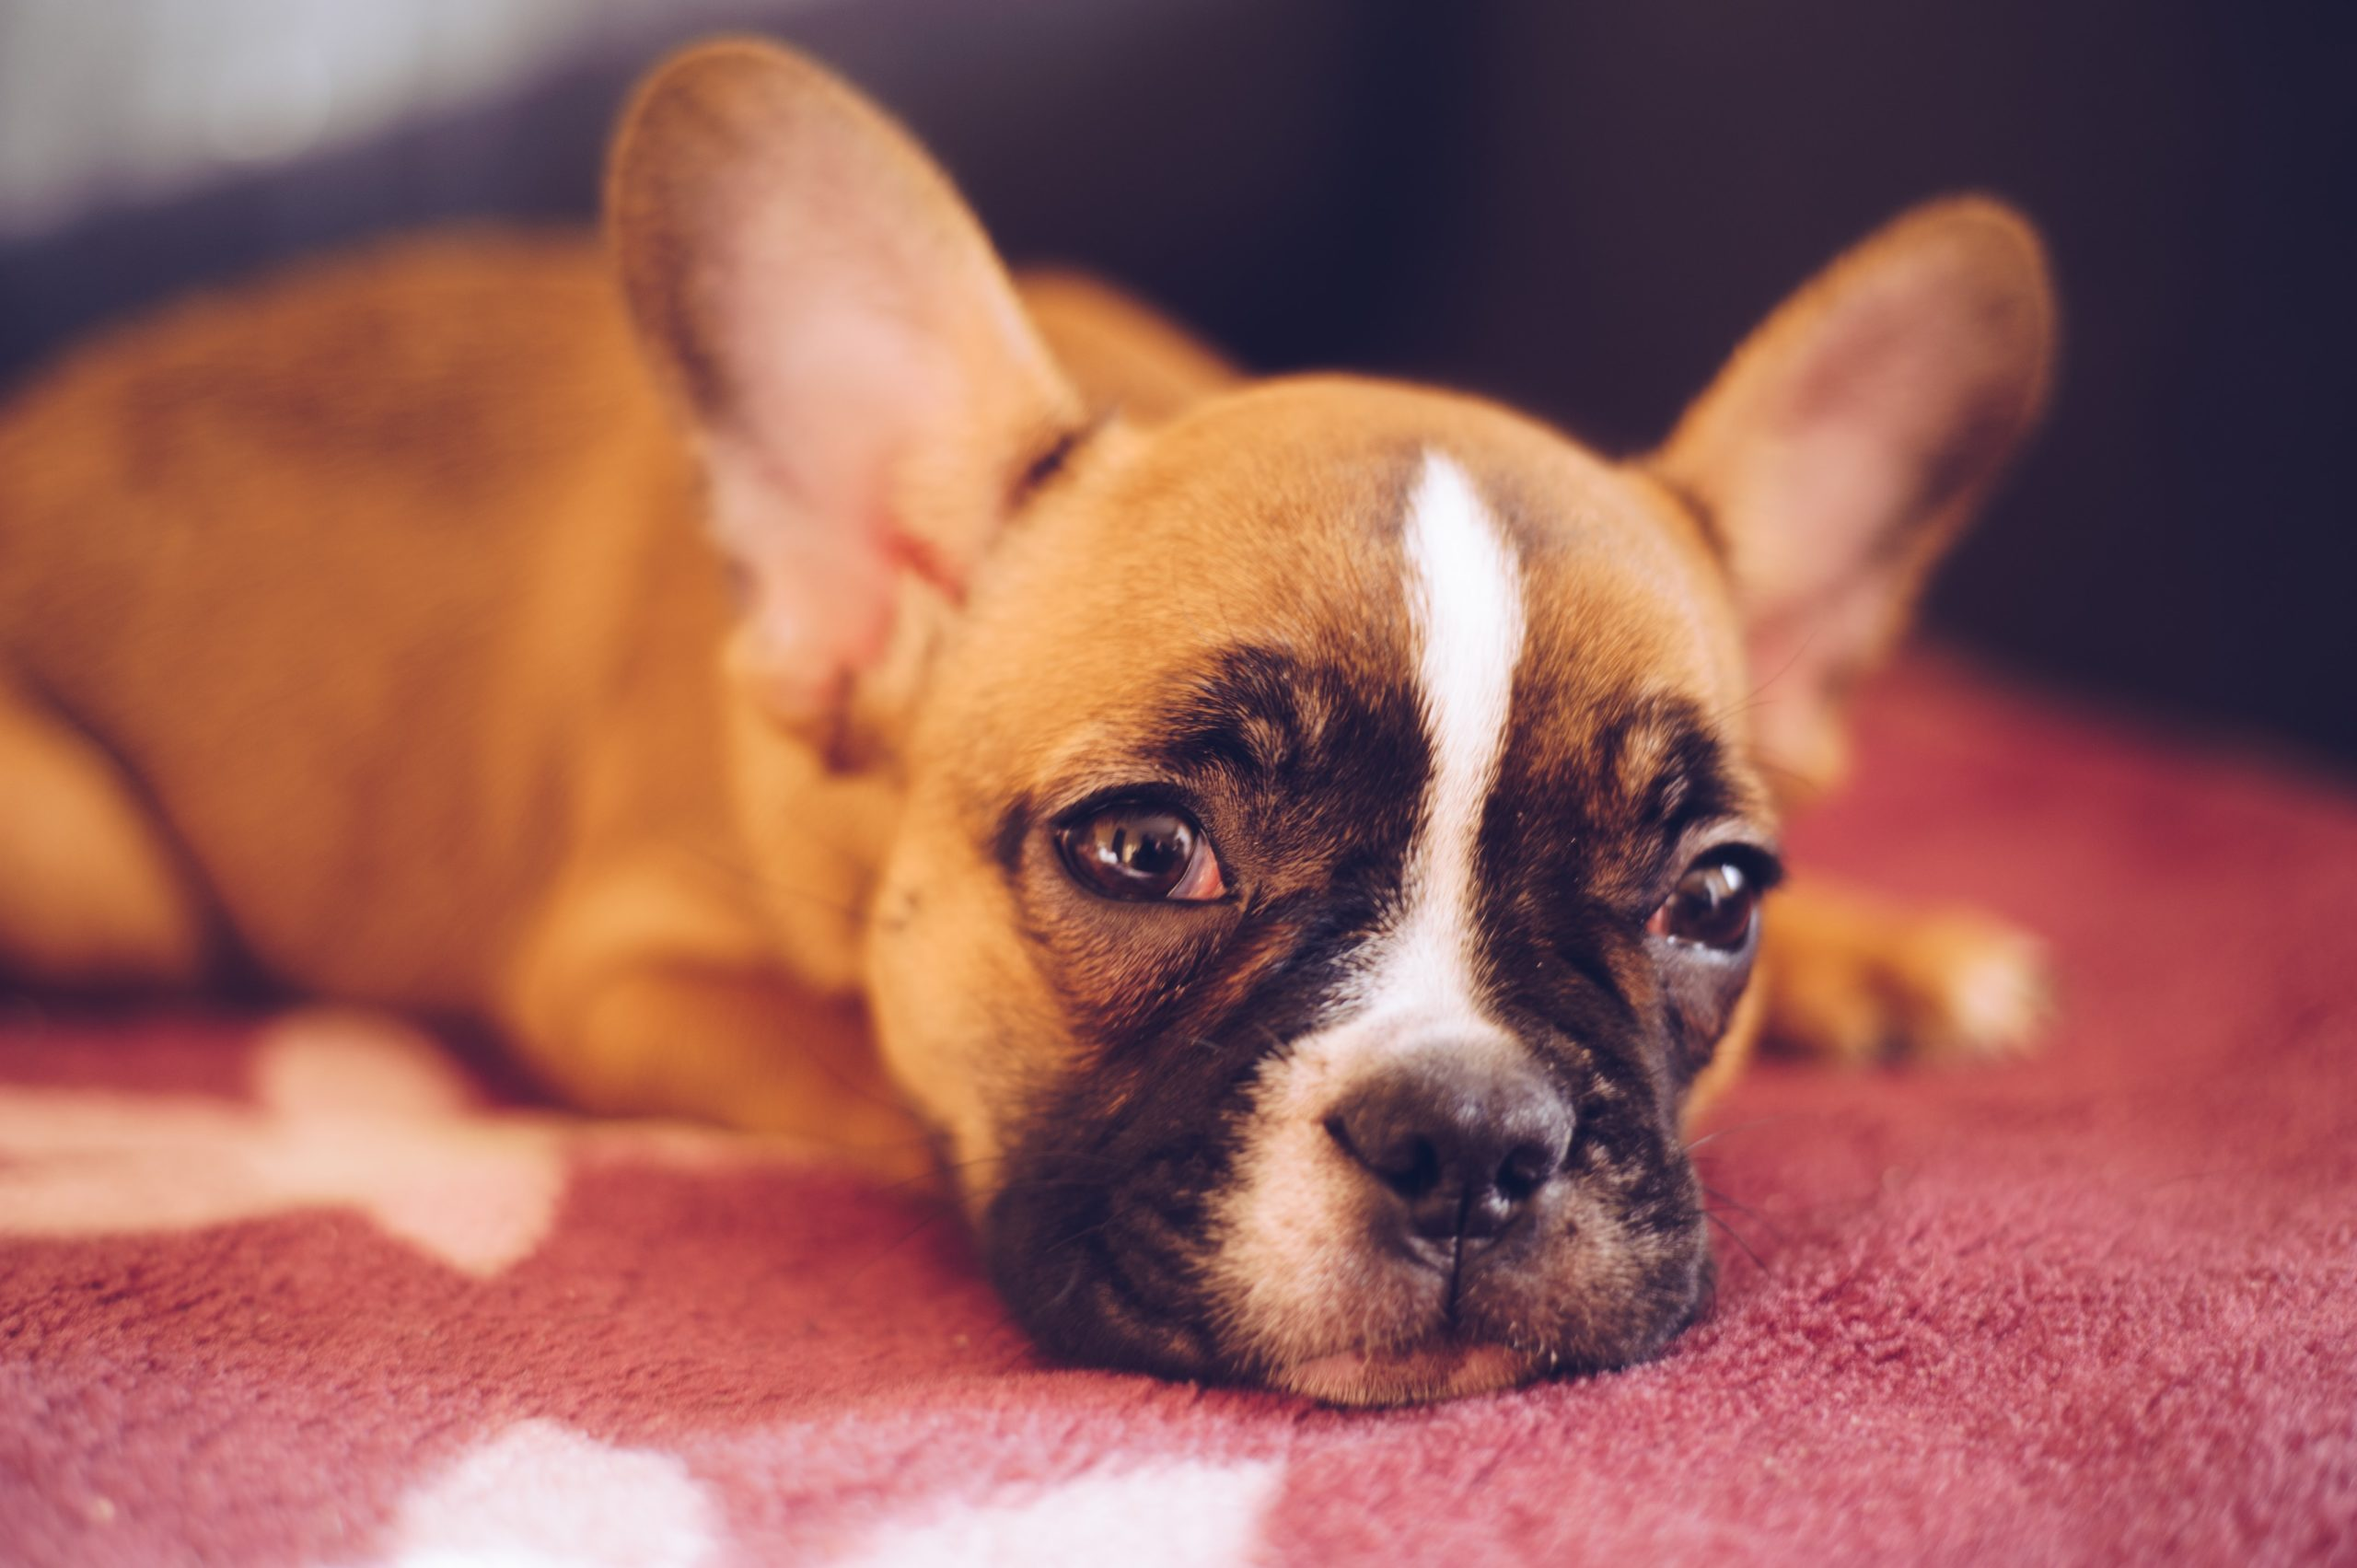 How Long Does It Take To Potty Train A Dog?